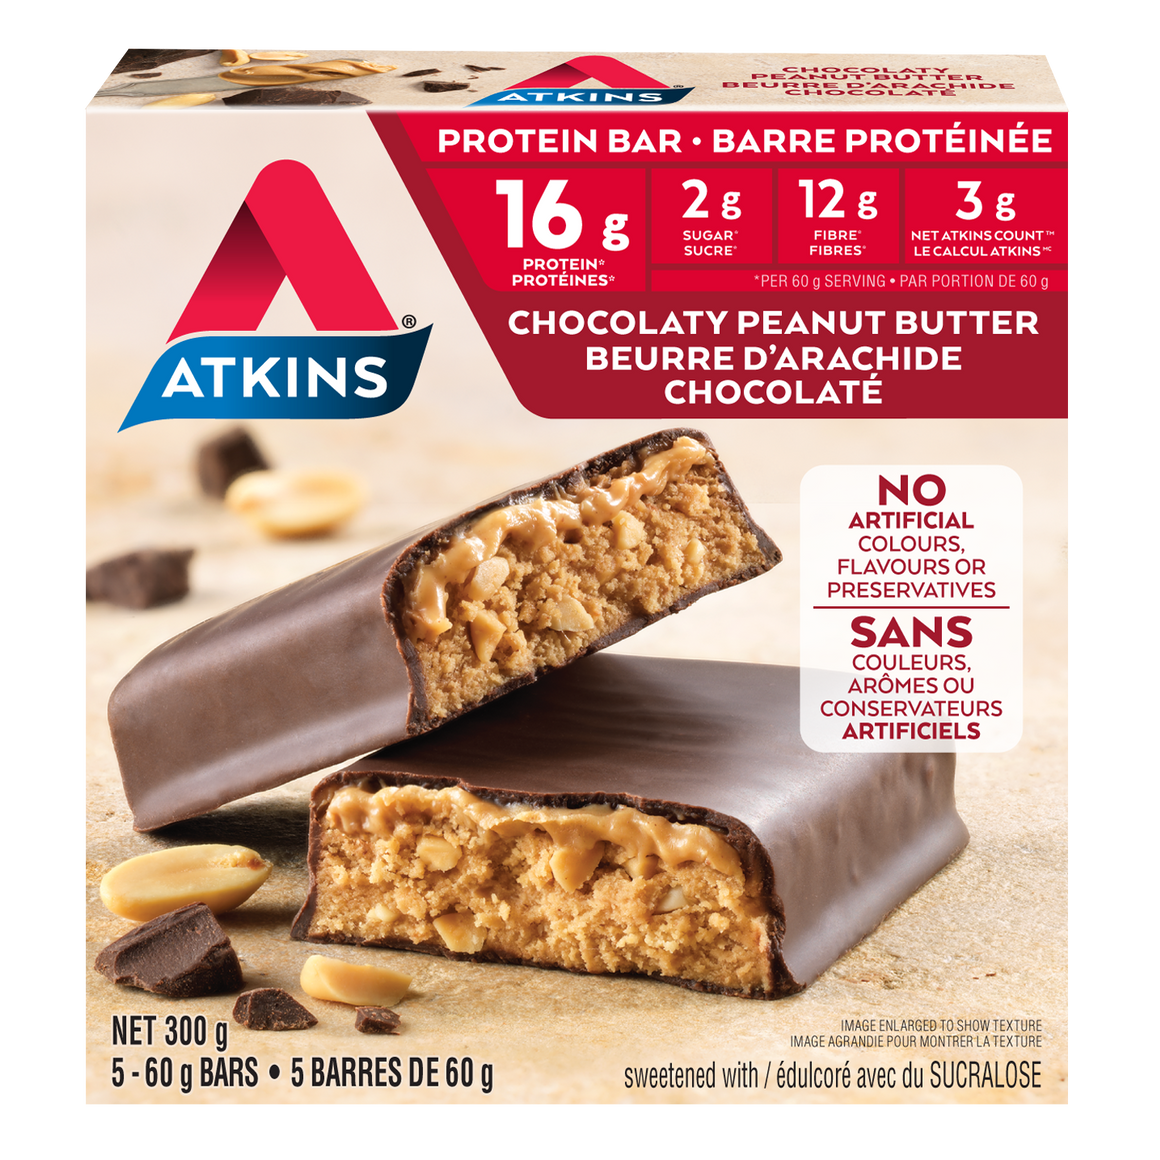 Atkins - Protein Bar - Chocolaty Peanut Butter - 5 Bars